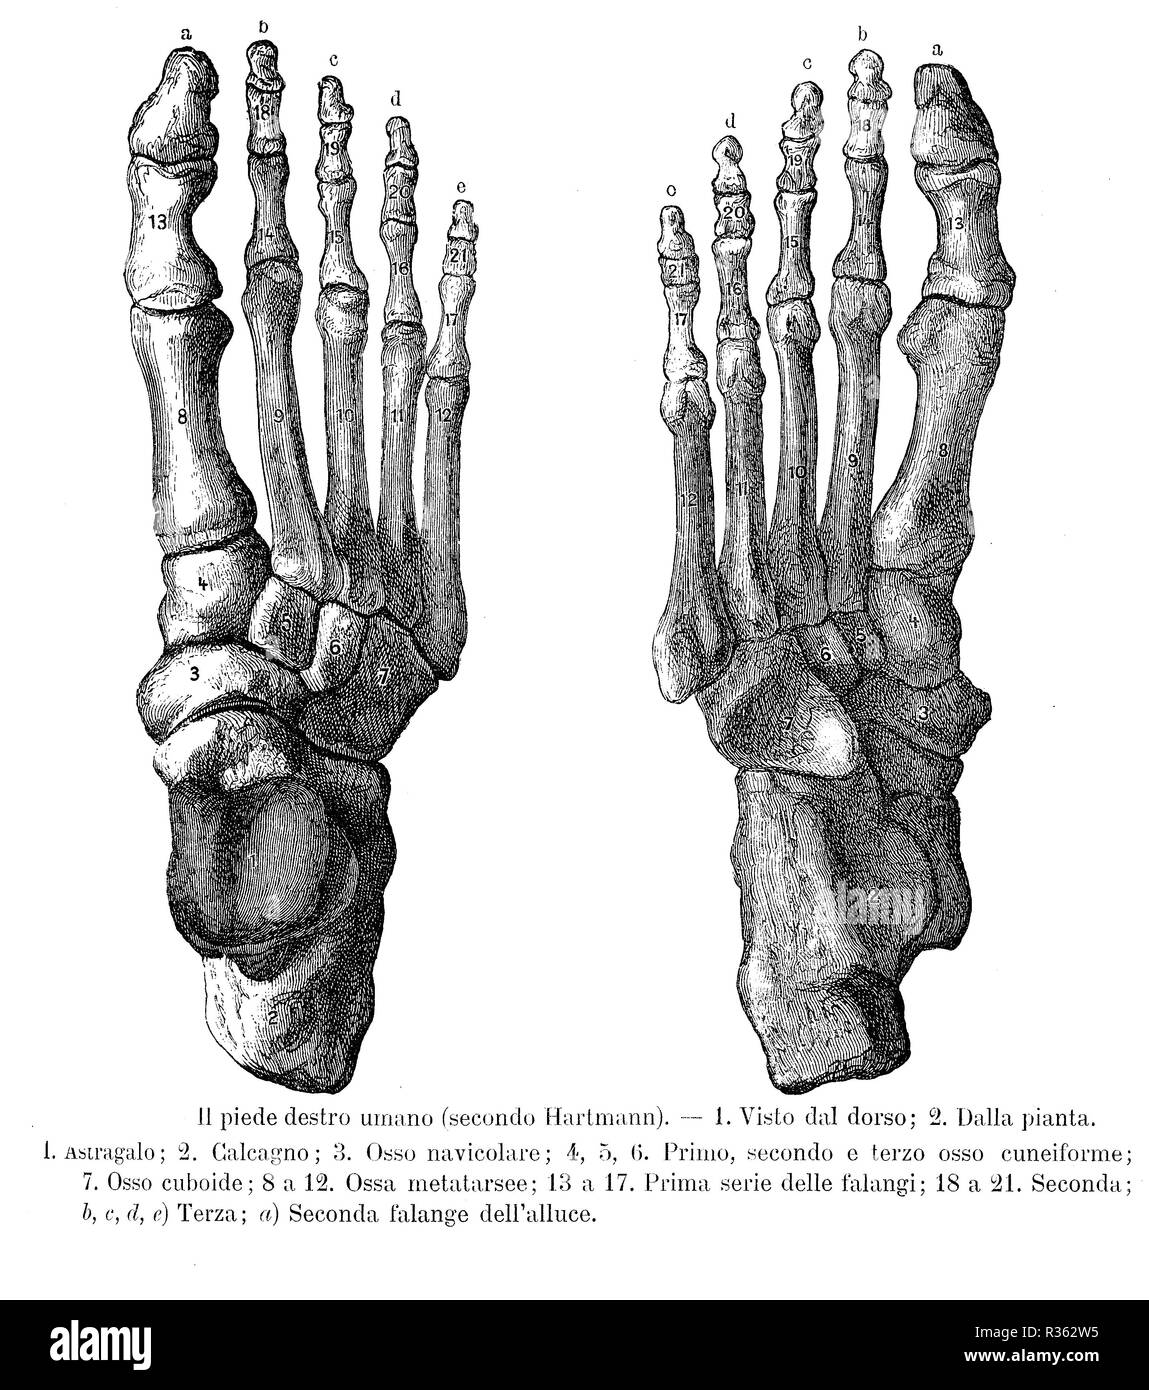 Vintage illustration of anatomy, right foot bones, dorsalis and sole view with Italian anatomical descriptions - Stock Image